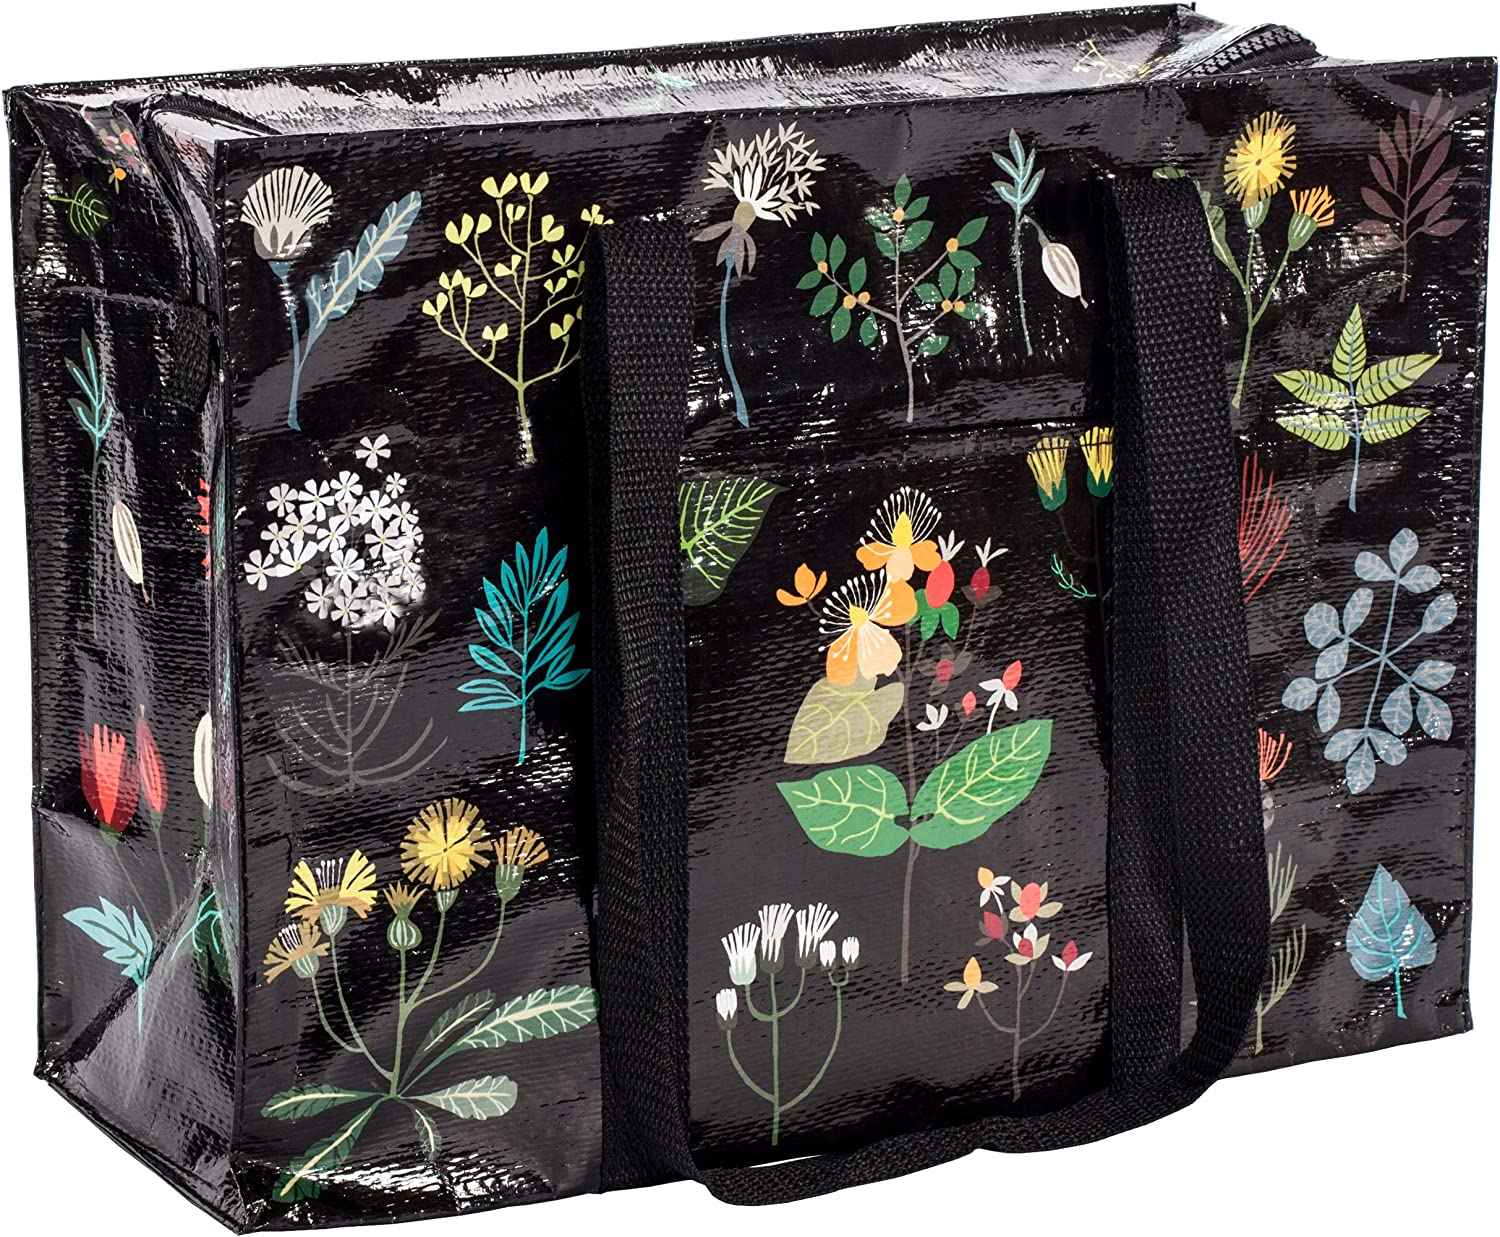 Blue Q Shoulder Tote, Plant Study. This botanical beauty is a carry-everywhere bag that features a hefty zipper, exterior pocket, wrap-around straps, reinforced floor, 95% recycled material, 11